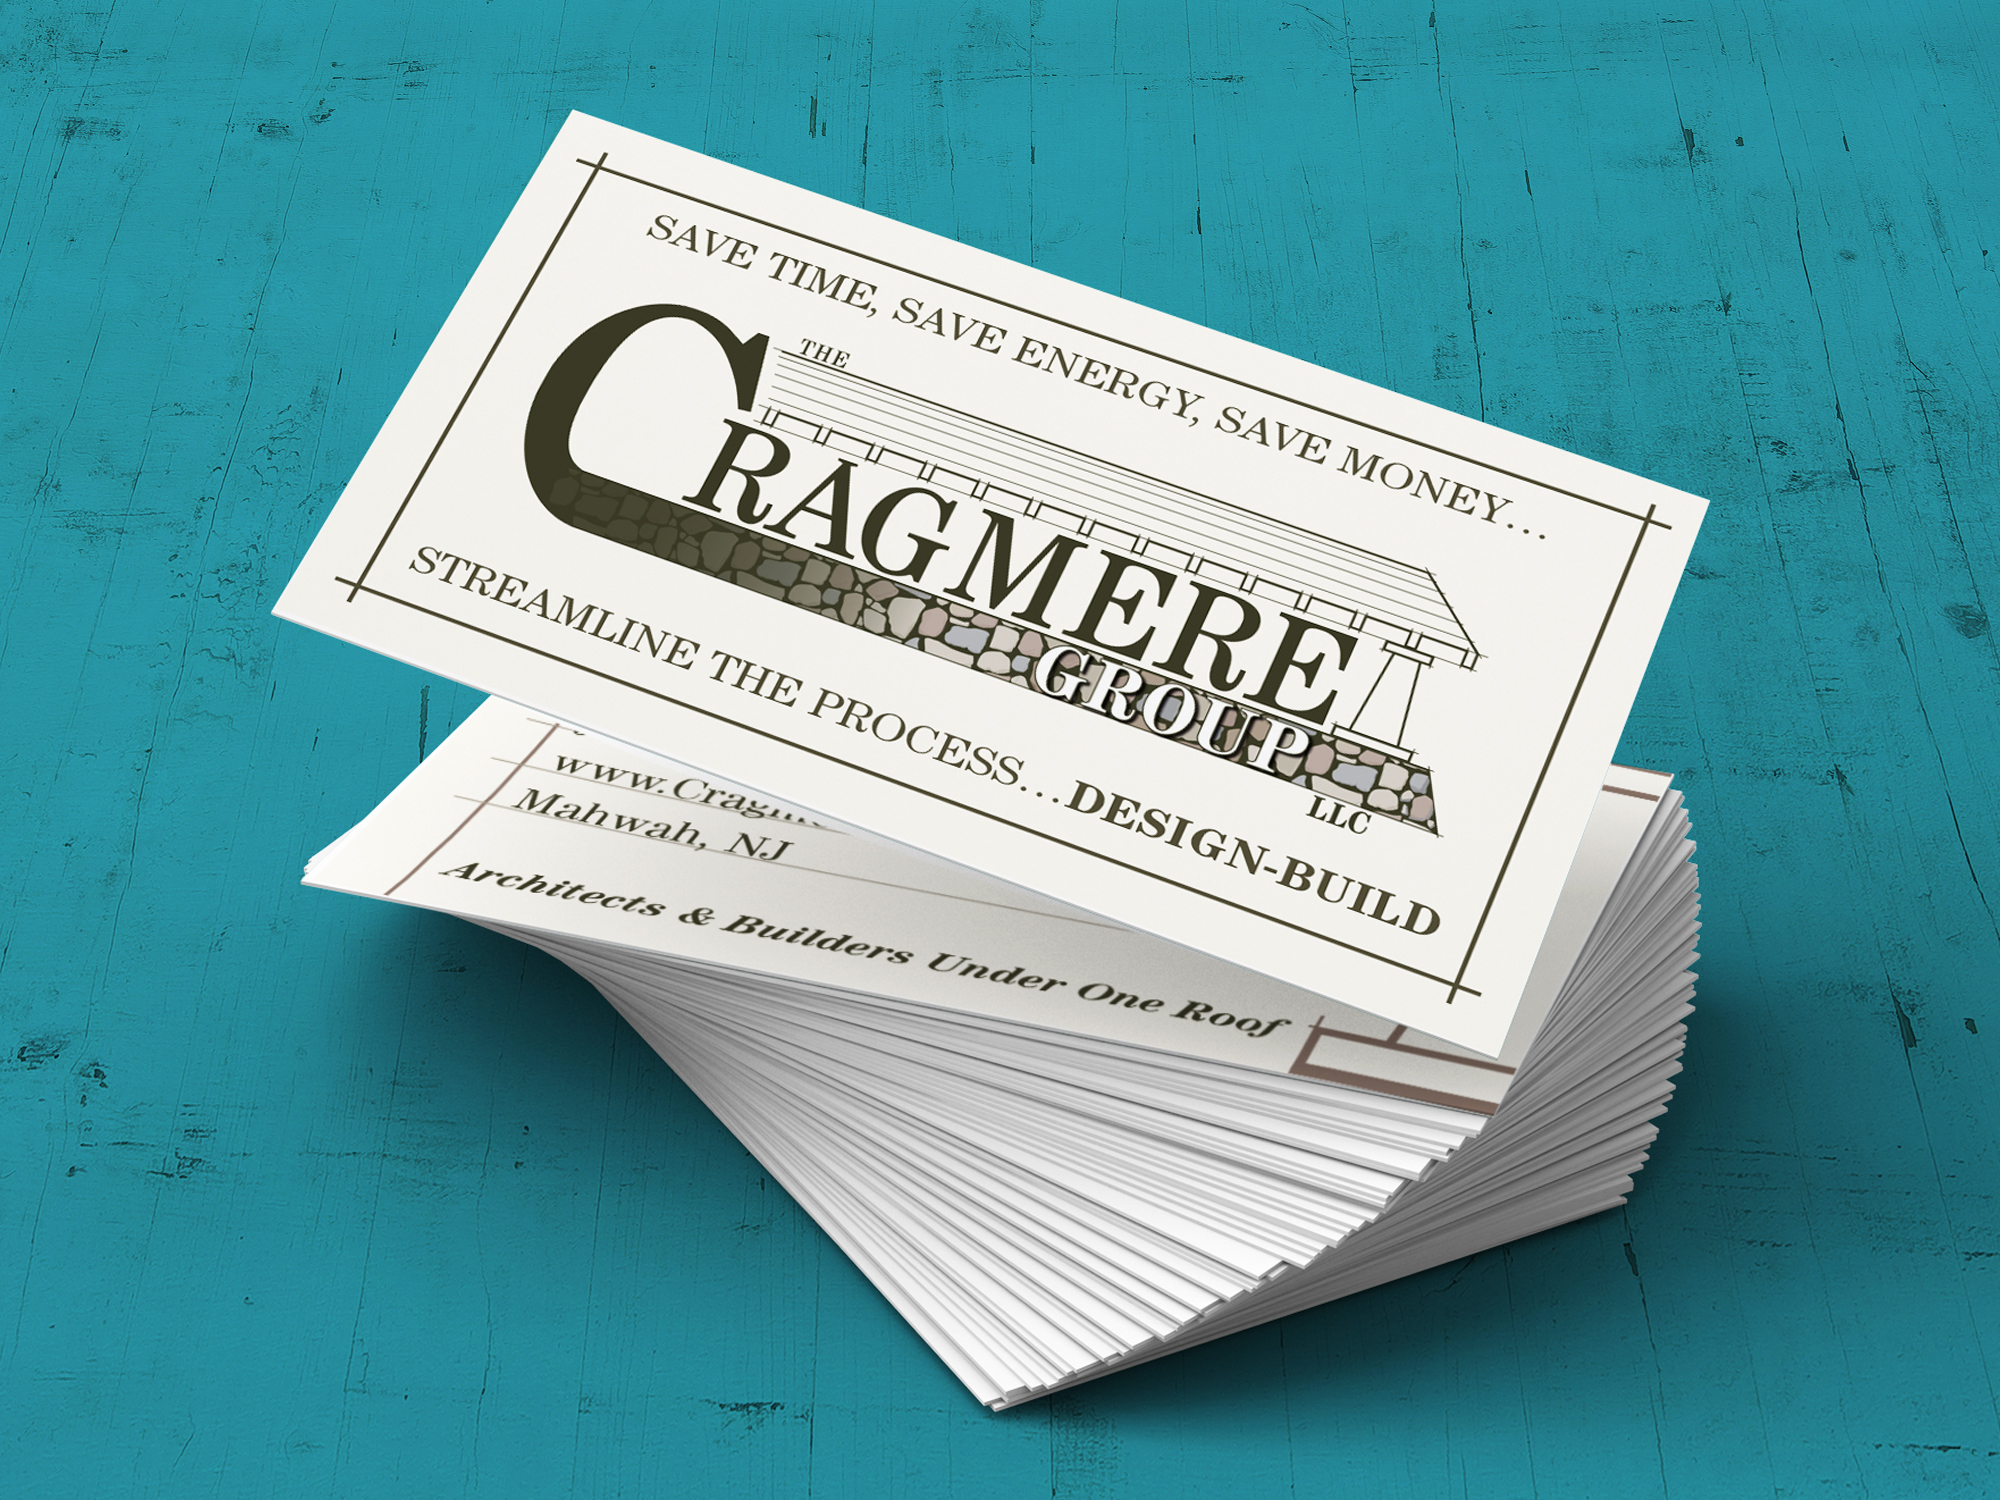 cragmere_businesscards.jpg